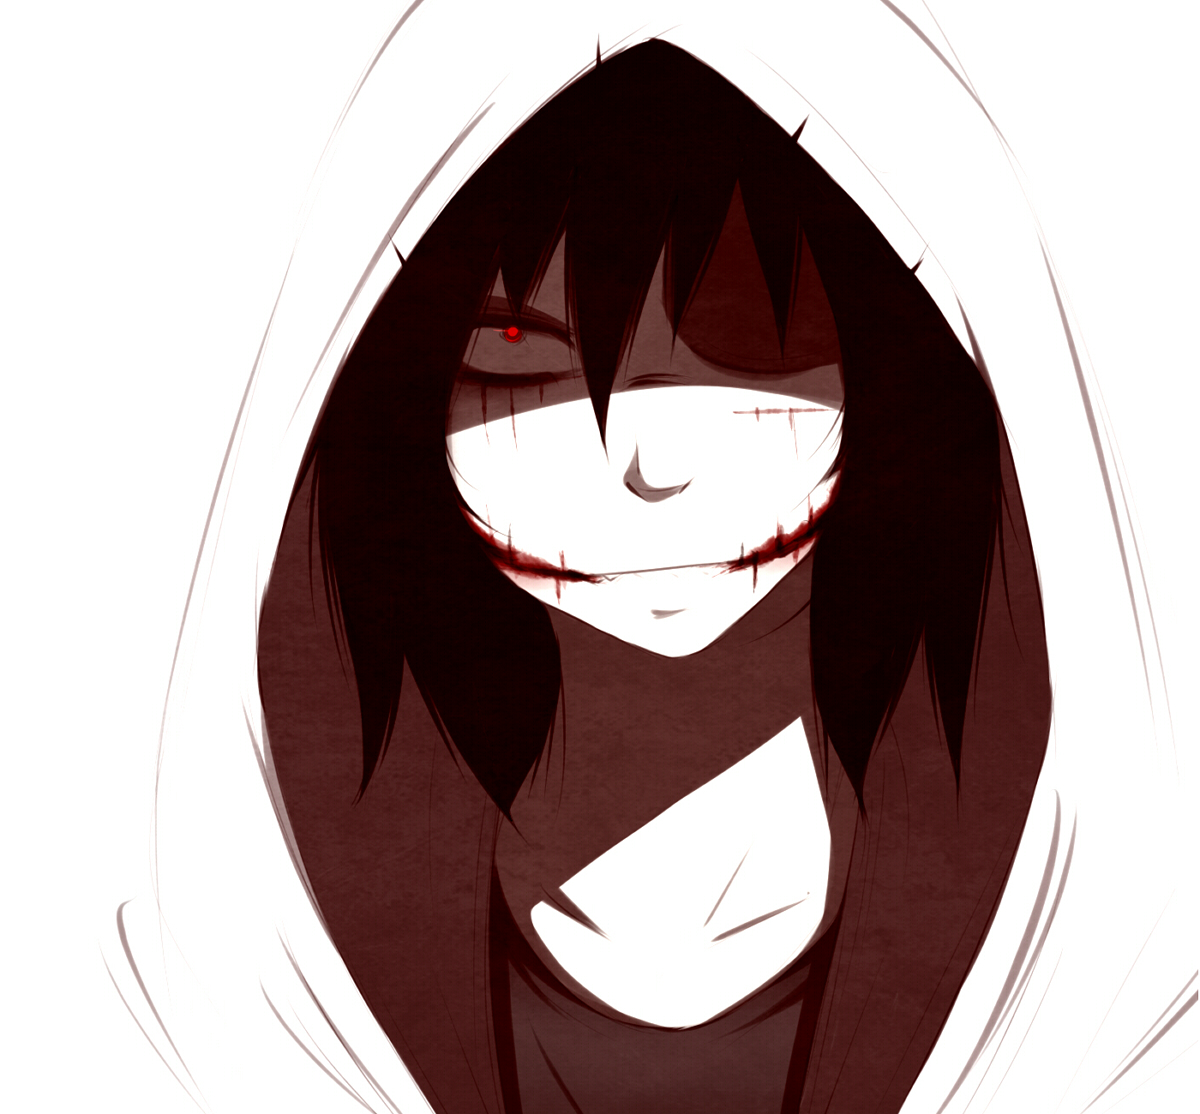 Jeff The Killer by Likesac on DeviantArt